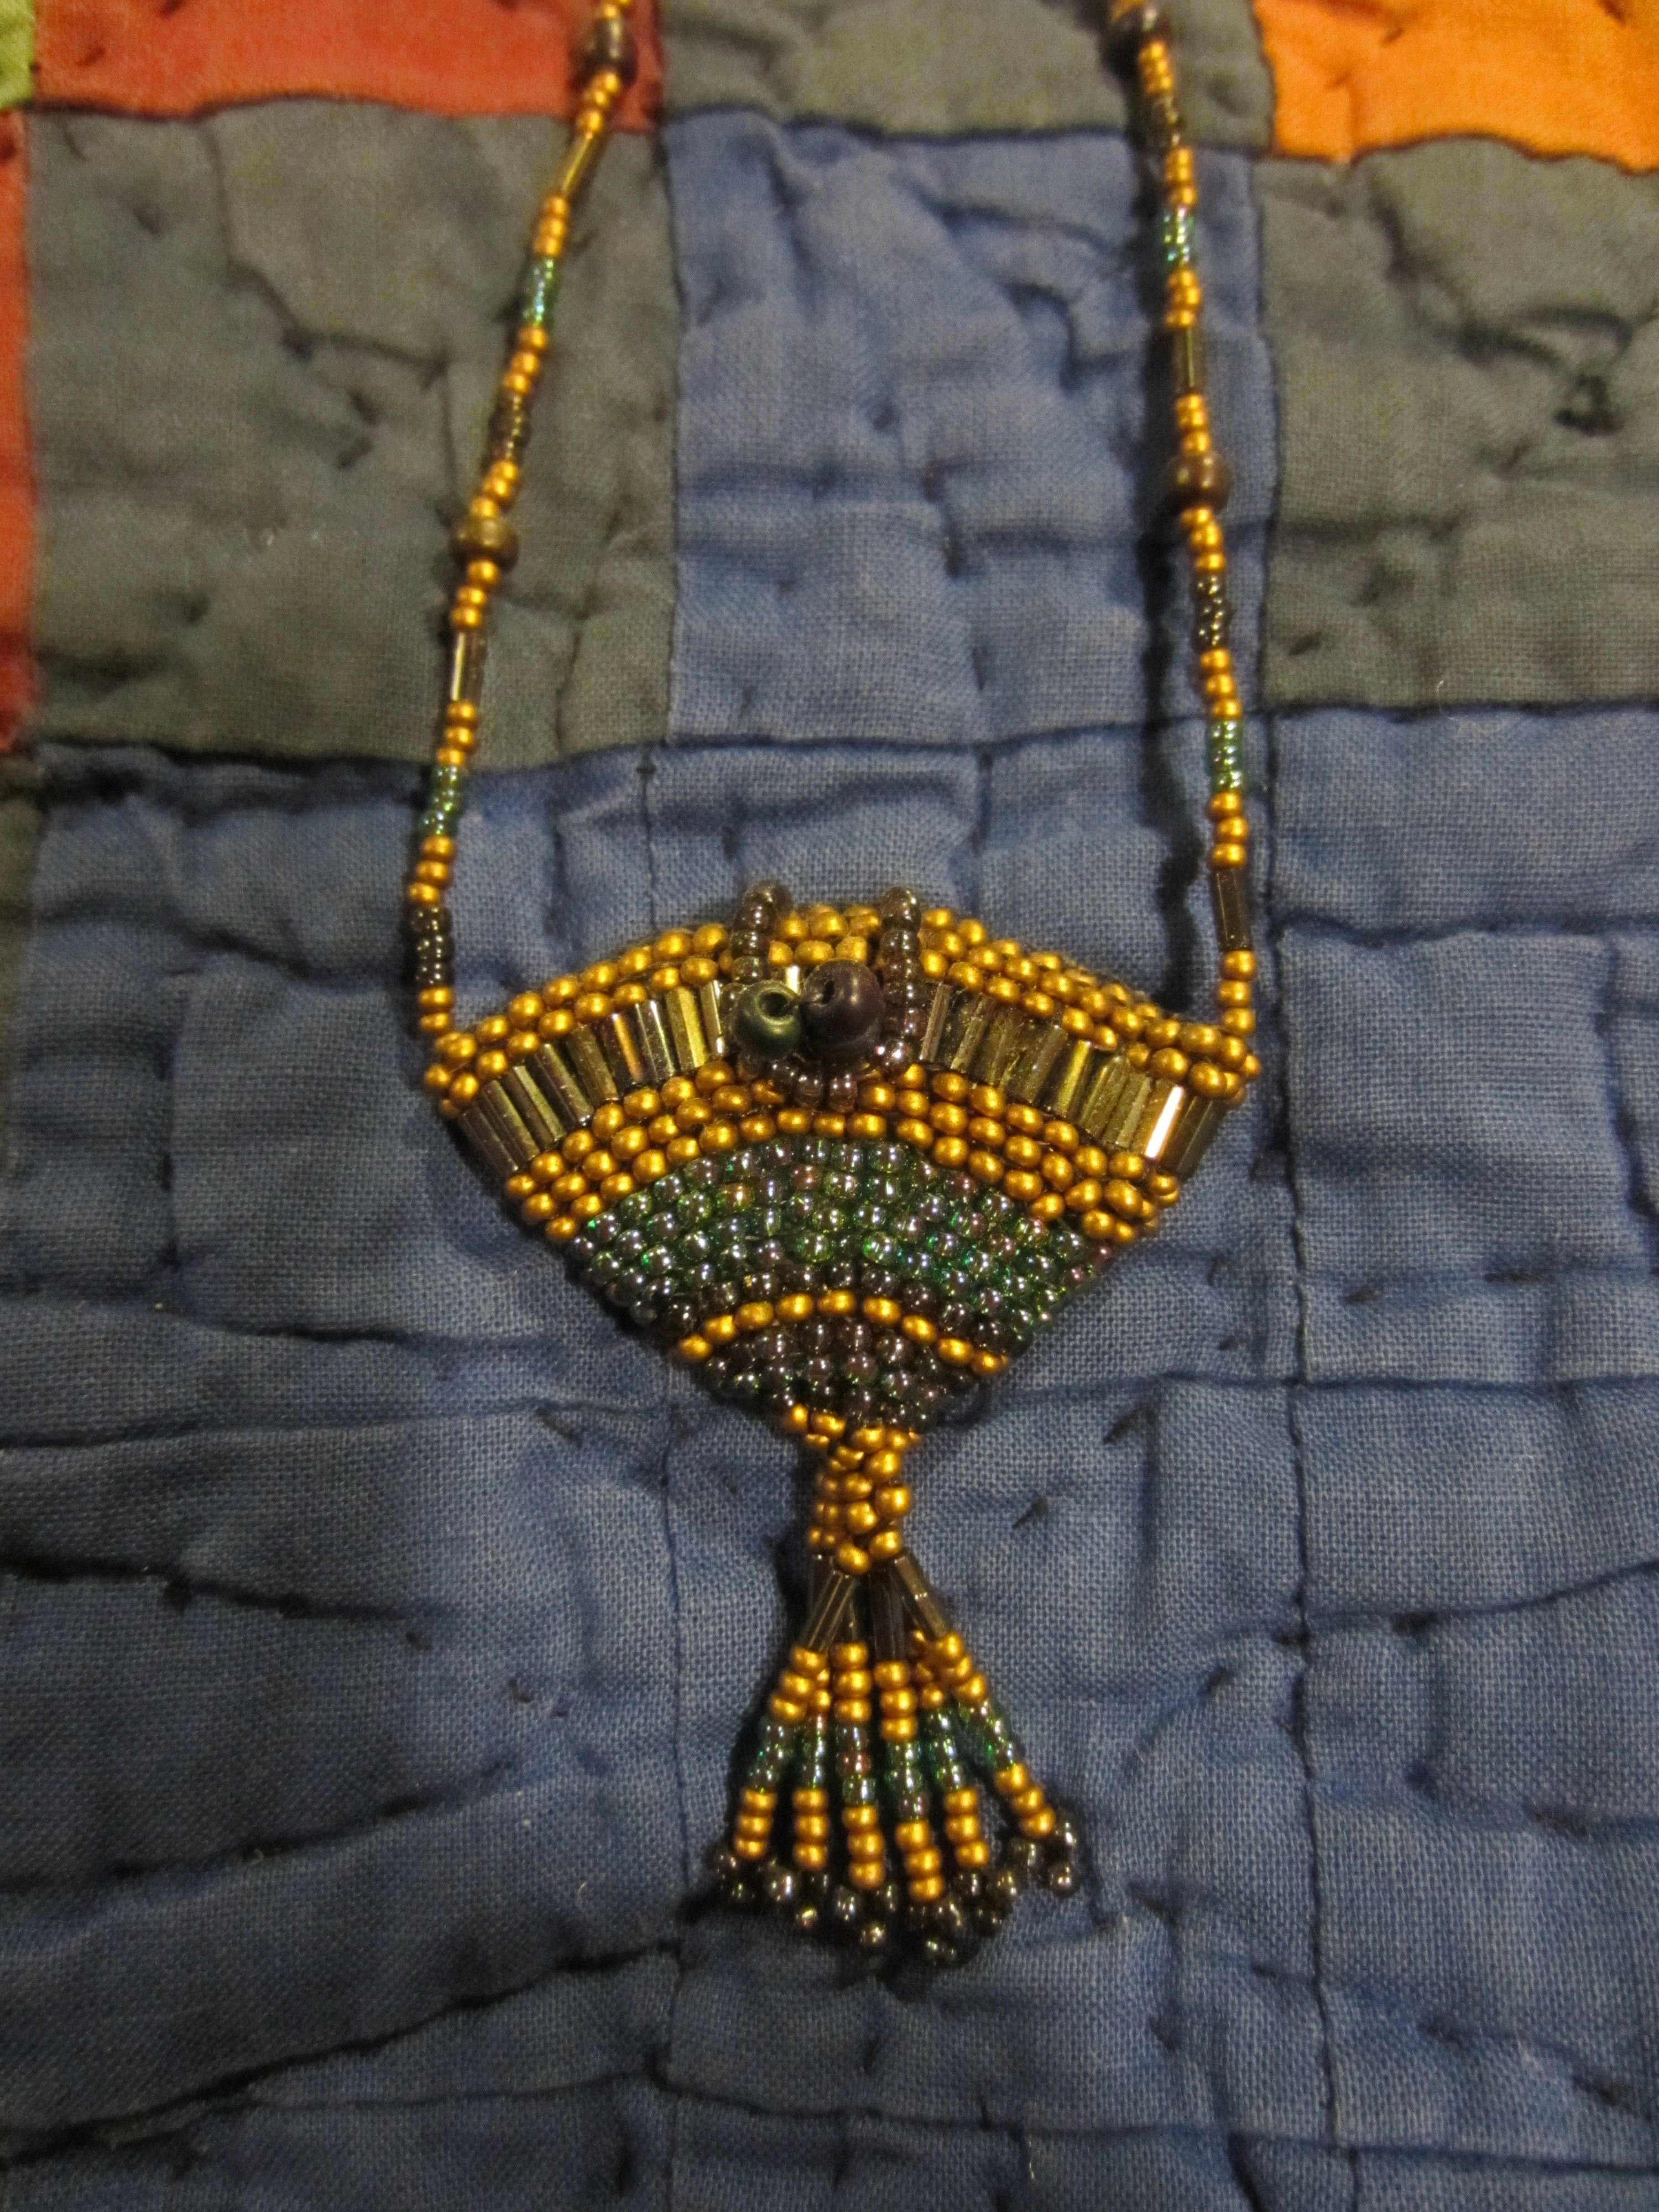 Beaded Necklace Made For Mary Fox By Jan Brattain, Birkenfeld, OR  foxontherunarts.blogspot.com